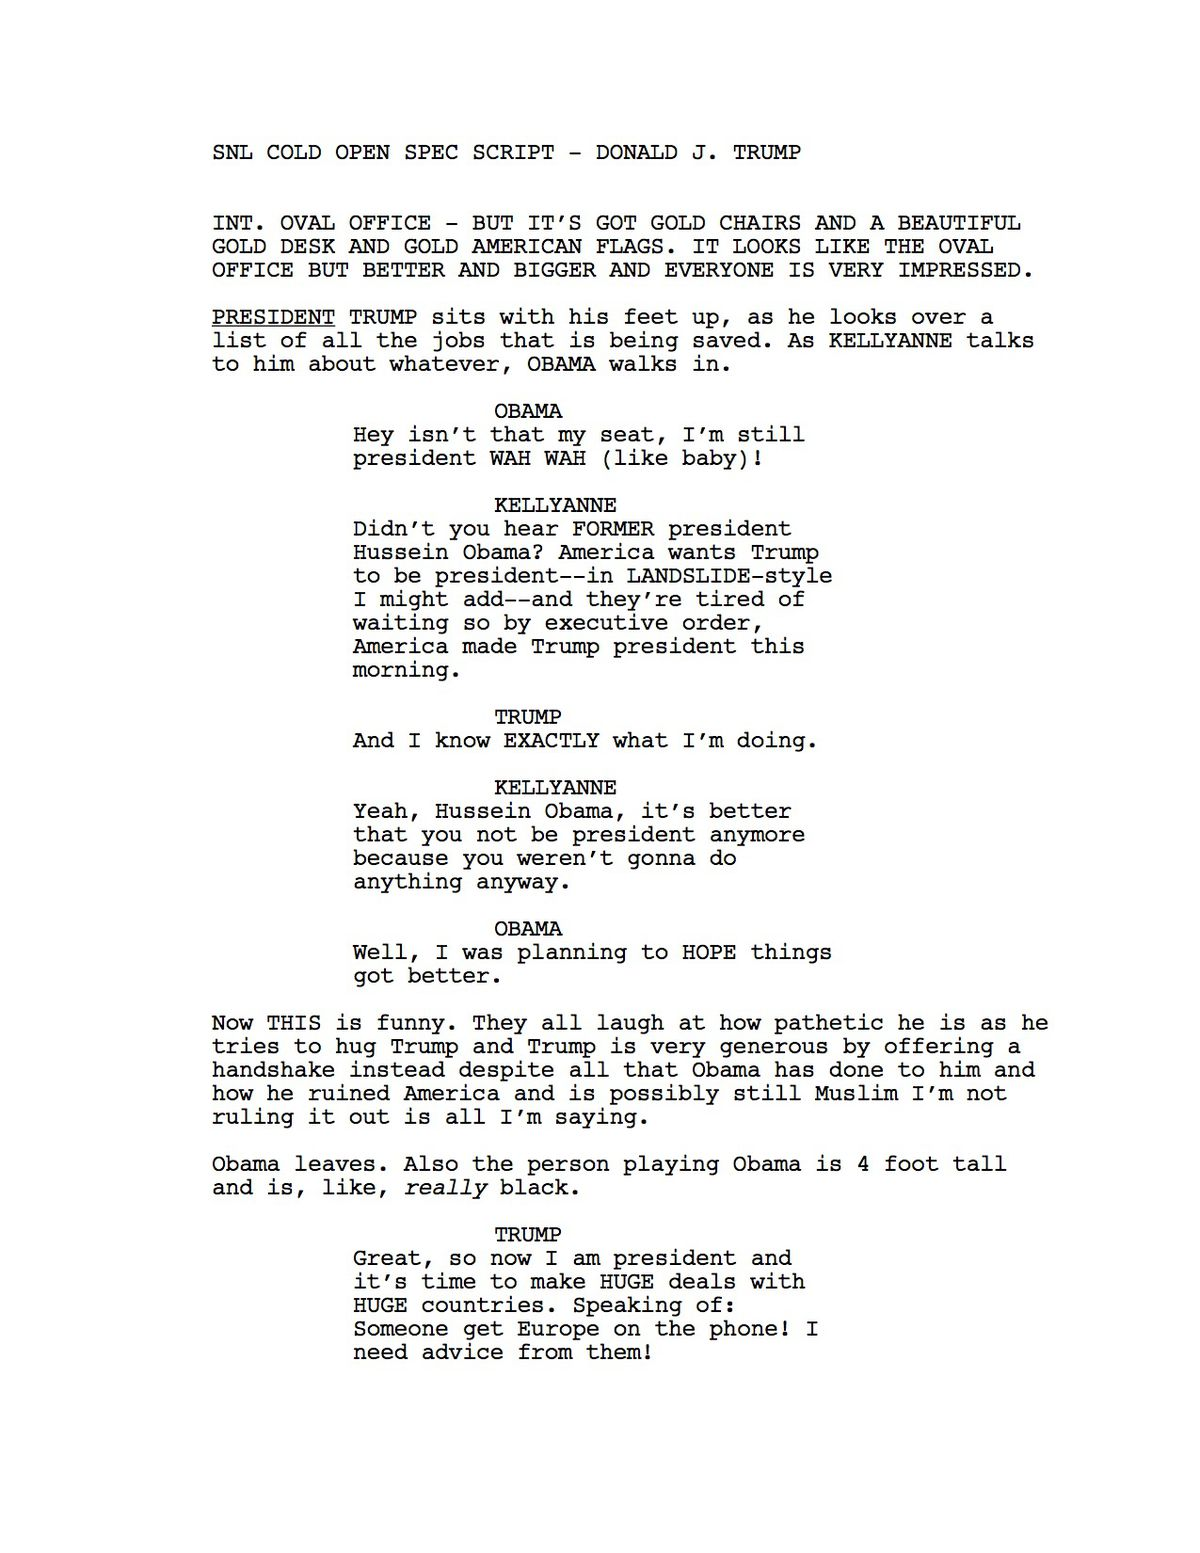 Read Donald Trump's Rejected SNL Script - Funny Or Die